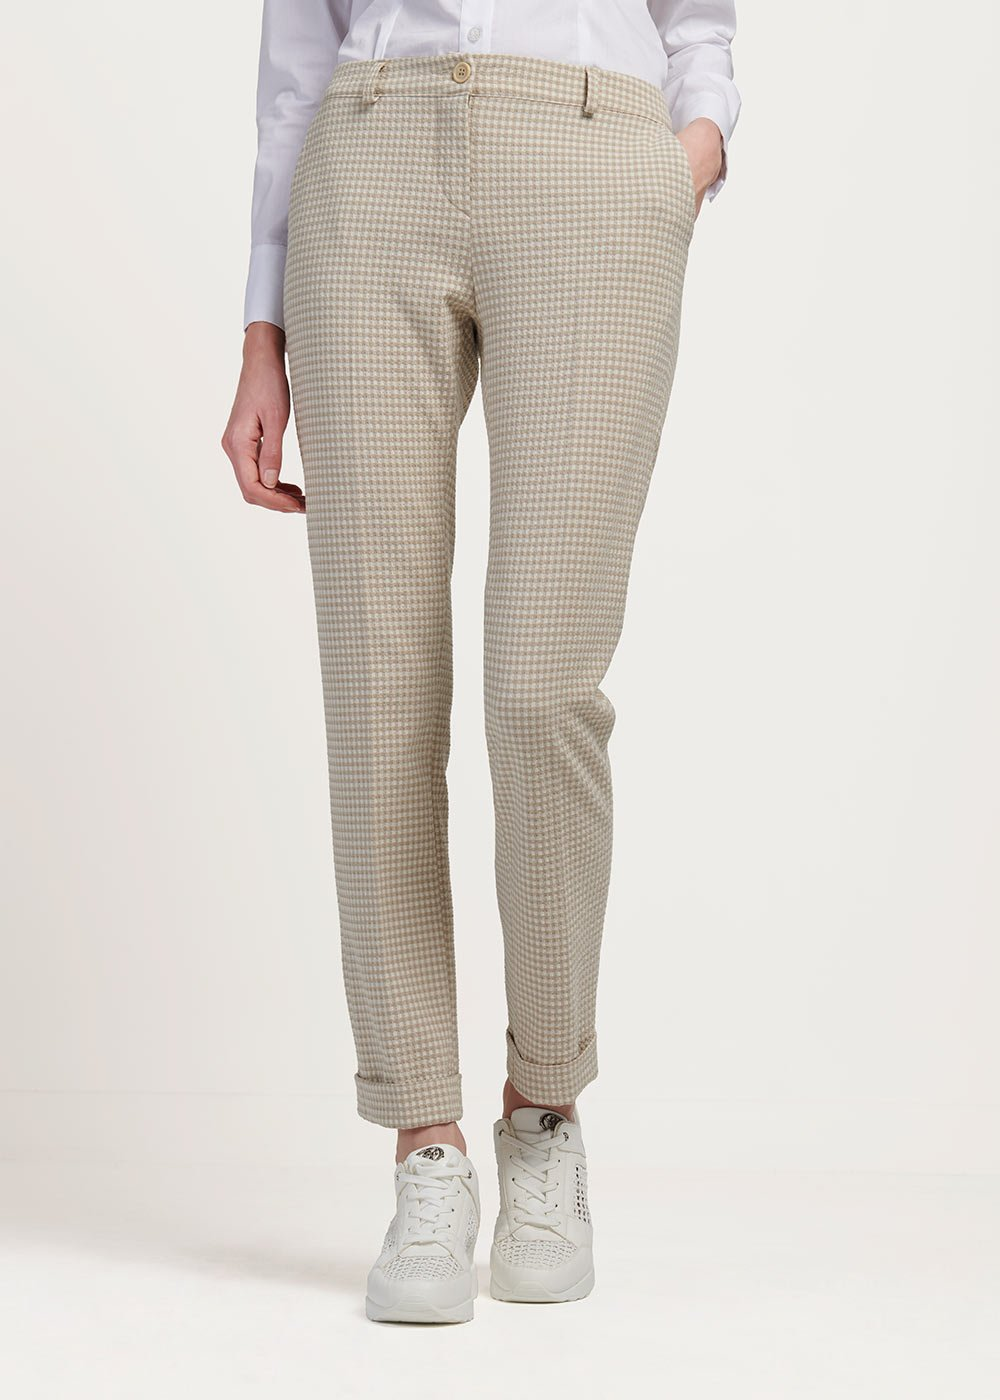 Bella trousers with check pattern - White / Beige Fantasia - Woman